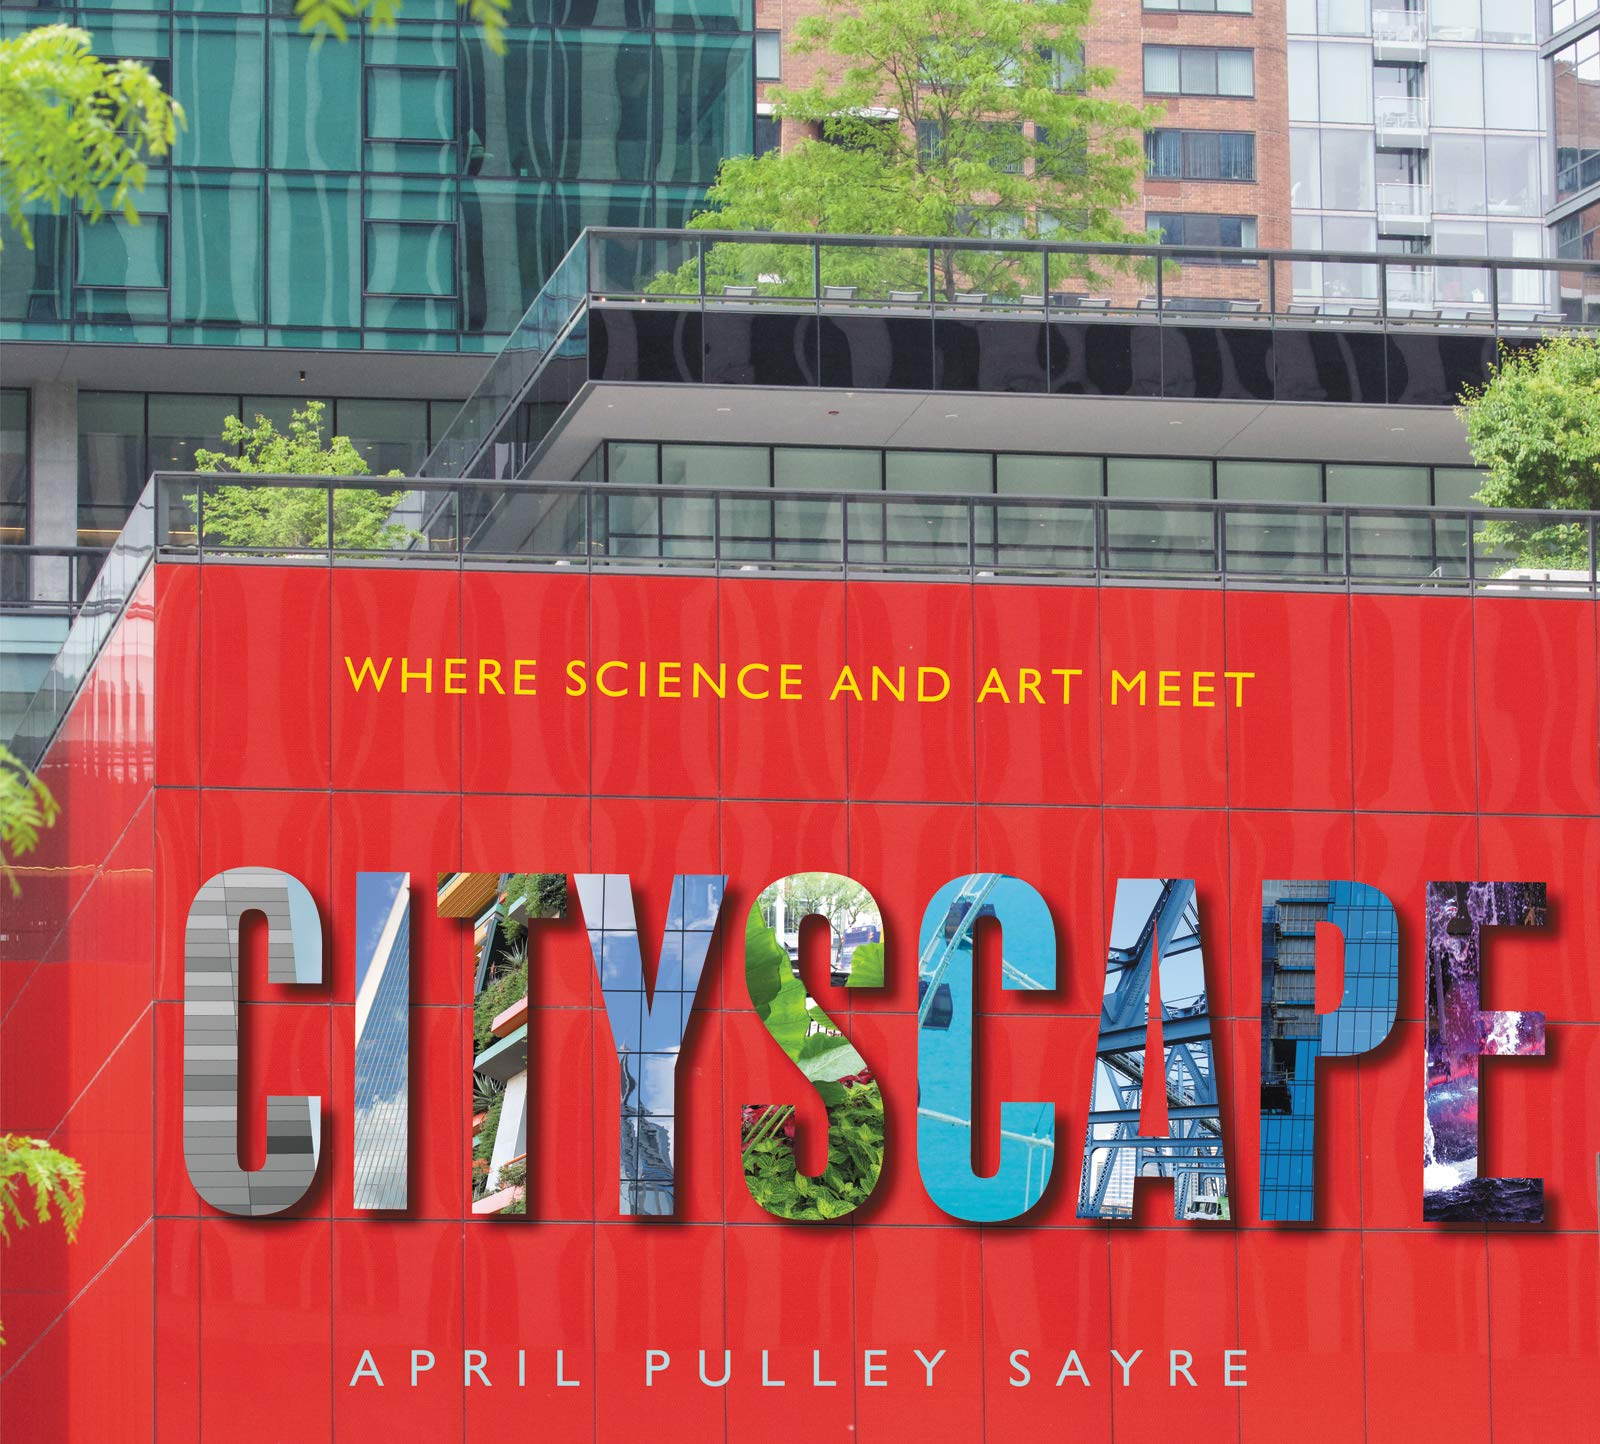 Amazon.com: Cityscape: Where Science and Art Meet (9780062893314 ...